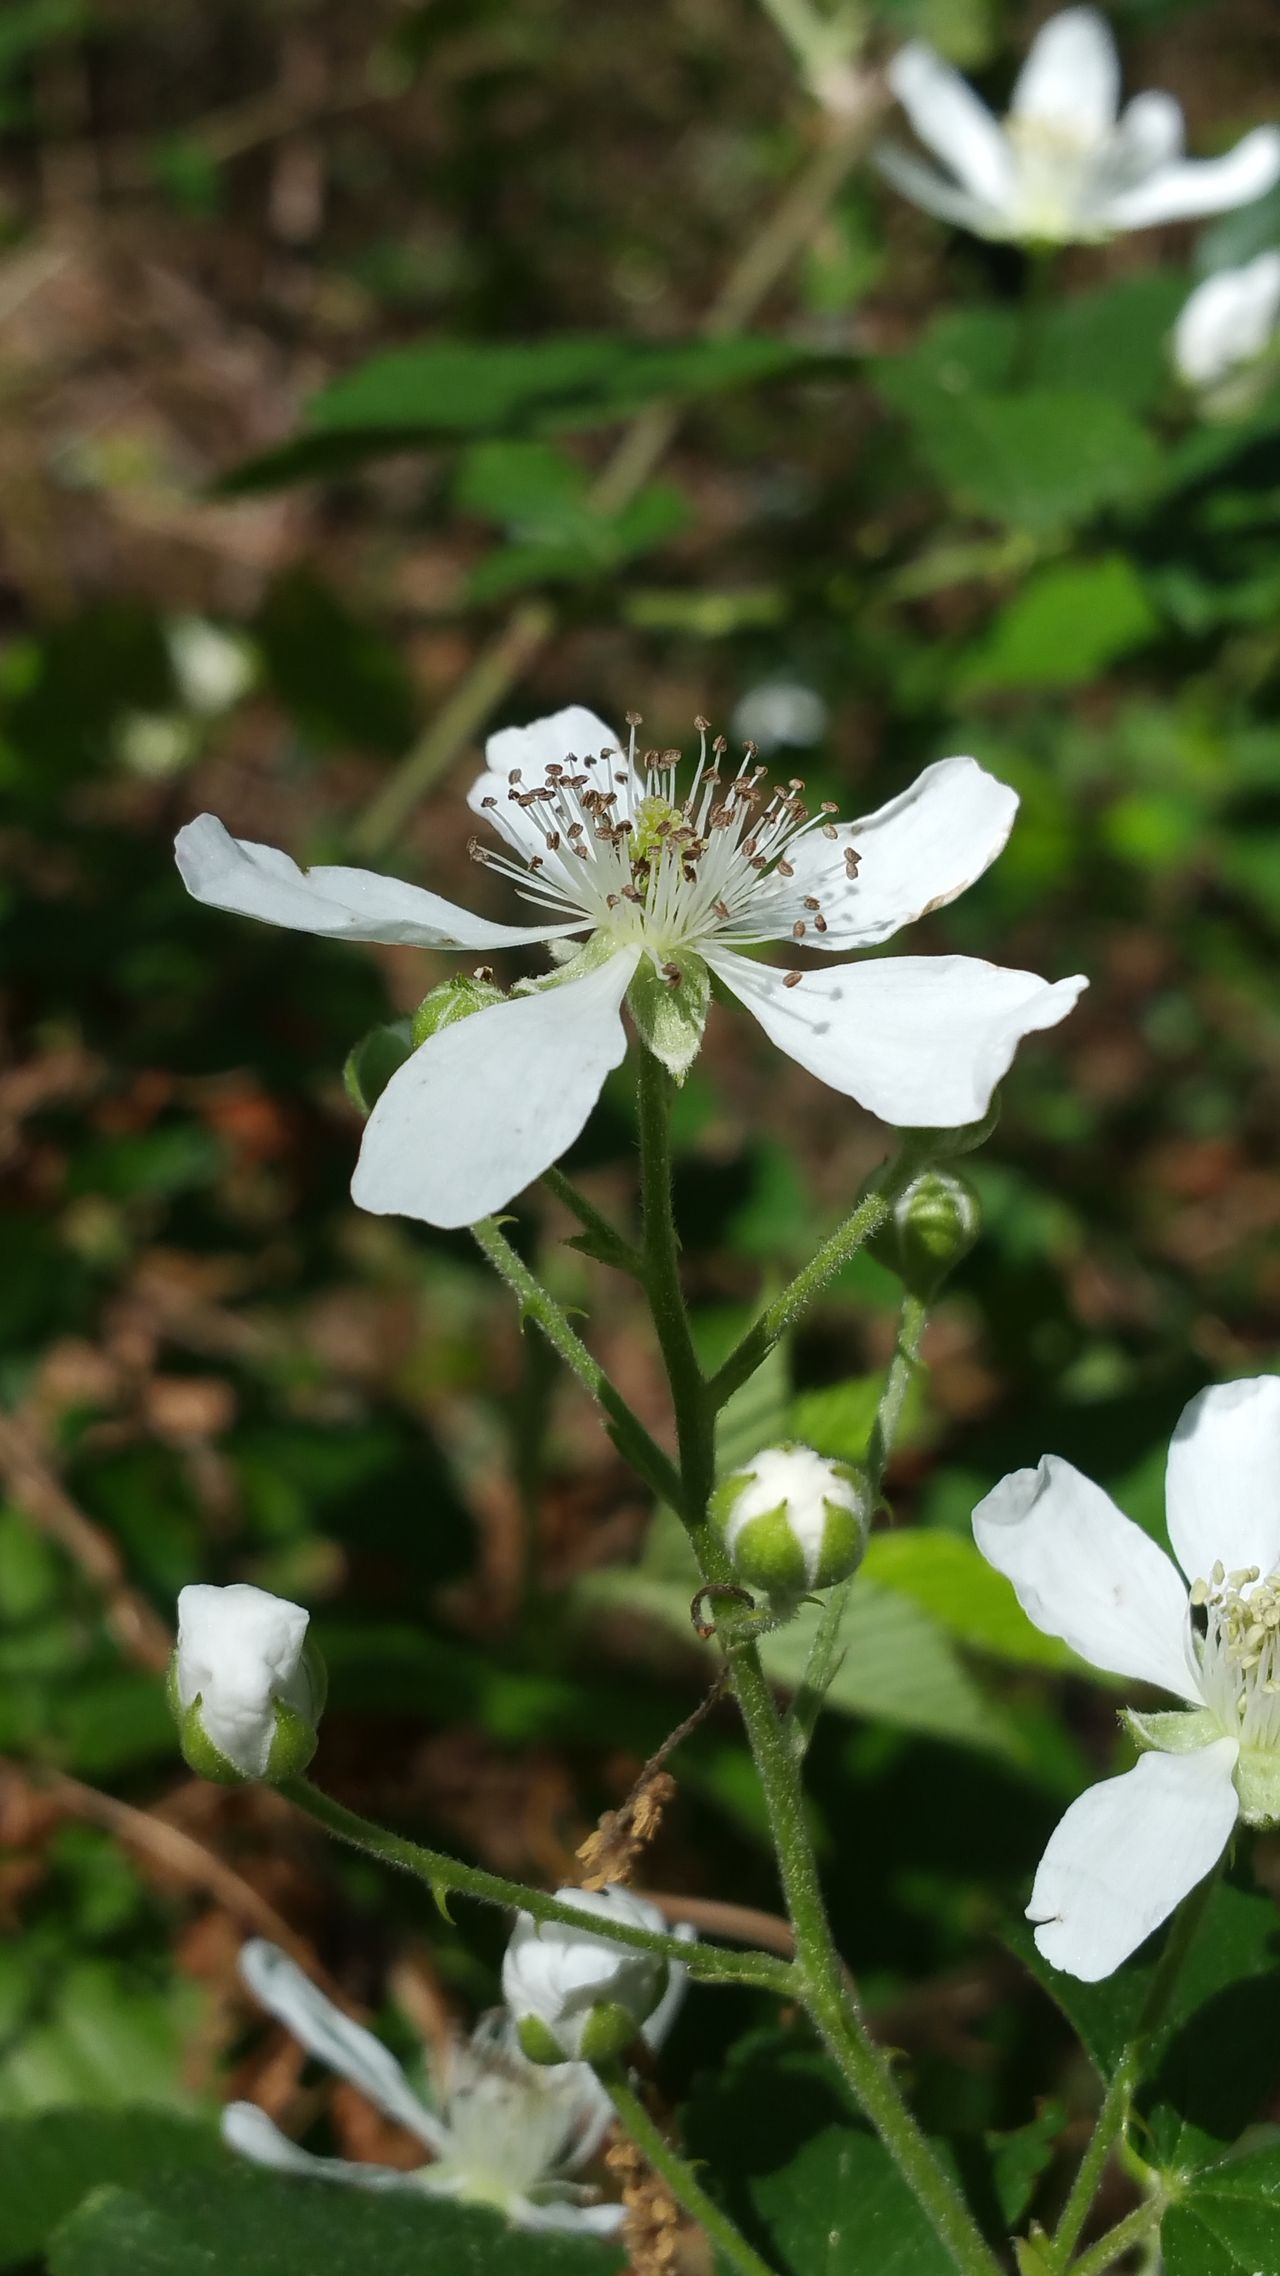 Nature Flower Fragility Close-up Growth Plant Outdoors Beauty In Nature No People Flower Head Freshness Day Naturelovers Naturephotography Popular Photos Photography Eyemphotos Eye Em Nature Lover My Photography Environment Colorful Black Berry Blossom Sunlight Lush Foliage White Color